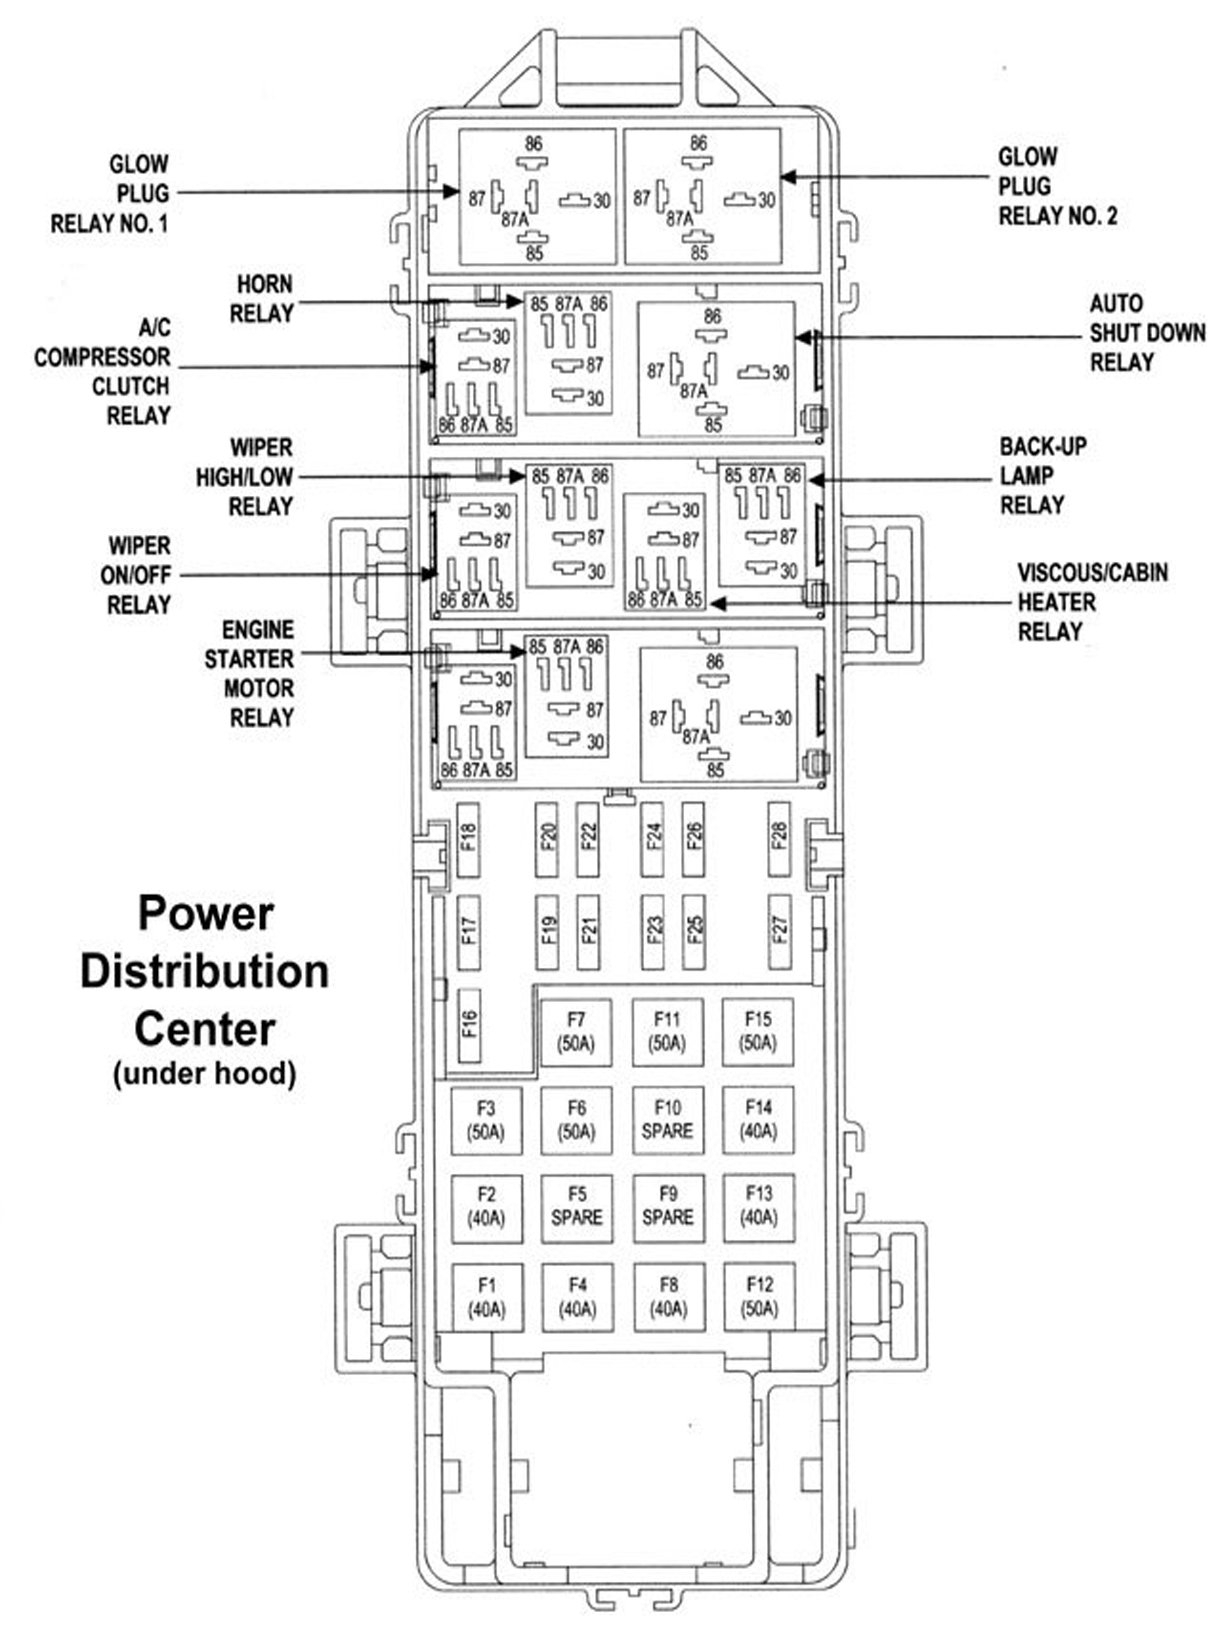 jeep grand cherokee wj 1999 to 2004 fuse box diagram cherokeeforum within 1999 jeep grand cherokee parts diagram jeep grand cherokee wj 1999 to 2004 fuse box diagram wj fuse box diagram at cos-gaming.co